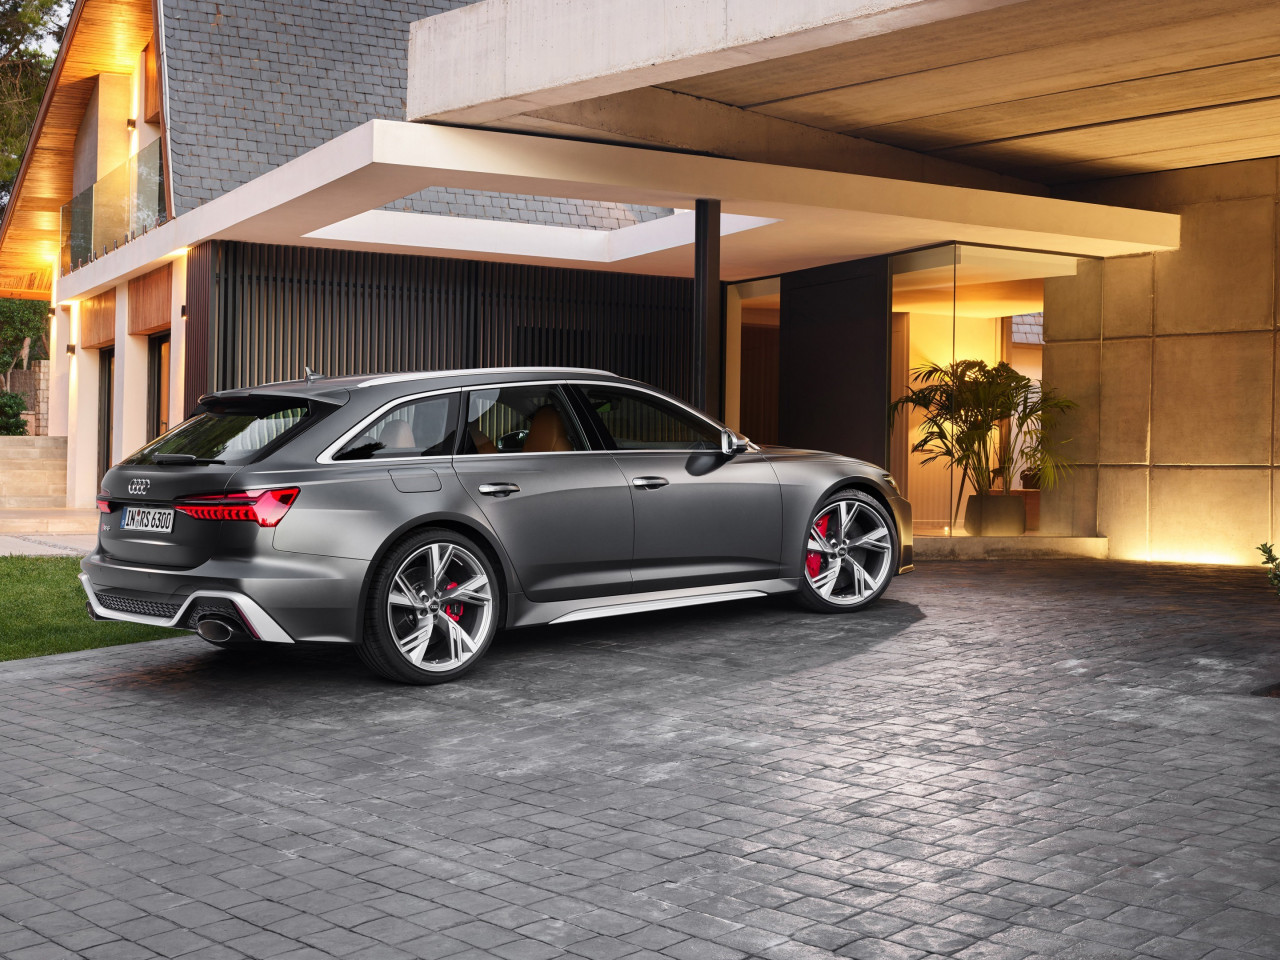 Audi RS 6 Avant wallpaper 1280x960